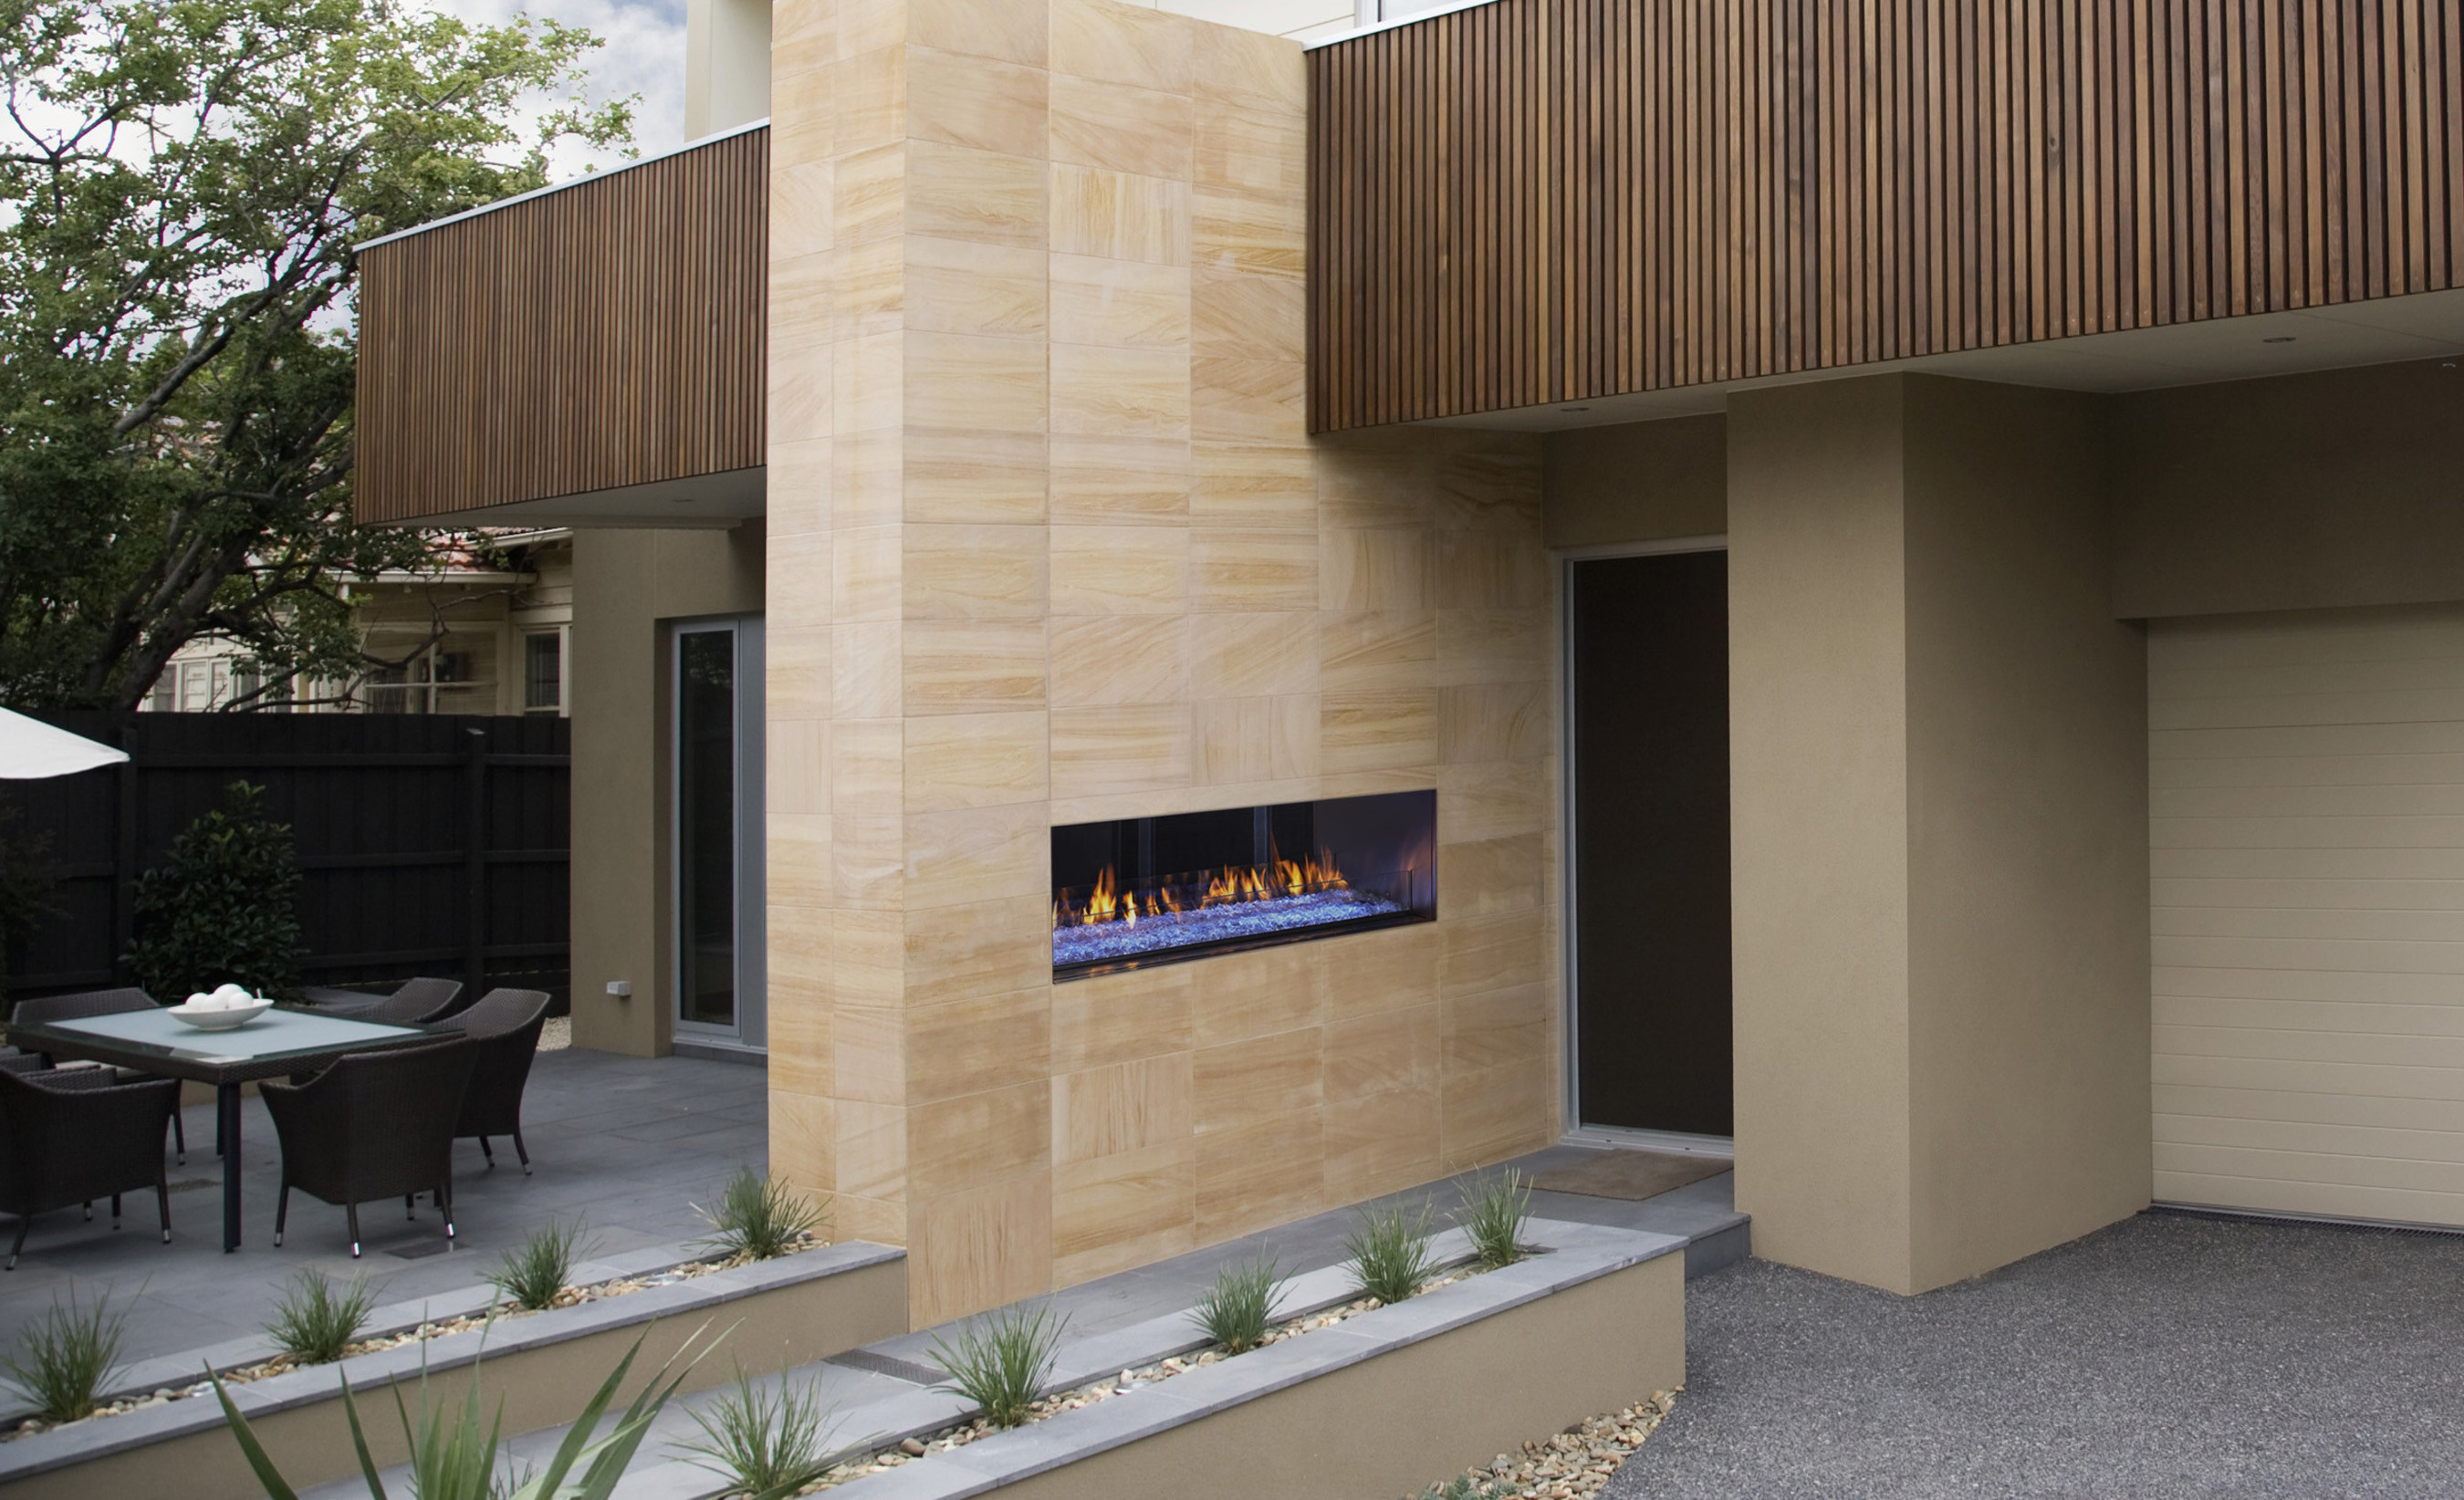 A new kind of outdoor fireplace, the Heat & Glo Palazzo features a clean, linear design that provides a contemporary focal point in an outdoor setting. The ability to install finishing material up to the firebox opening creates a unique frameless look that is built to last with marine-grade stainless steel. The industry's first remote-controlled Power Screen moves up and down for a seamless look that's both safe and easy to use, and keeps debris out of the fireplace.